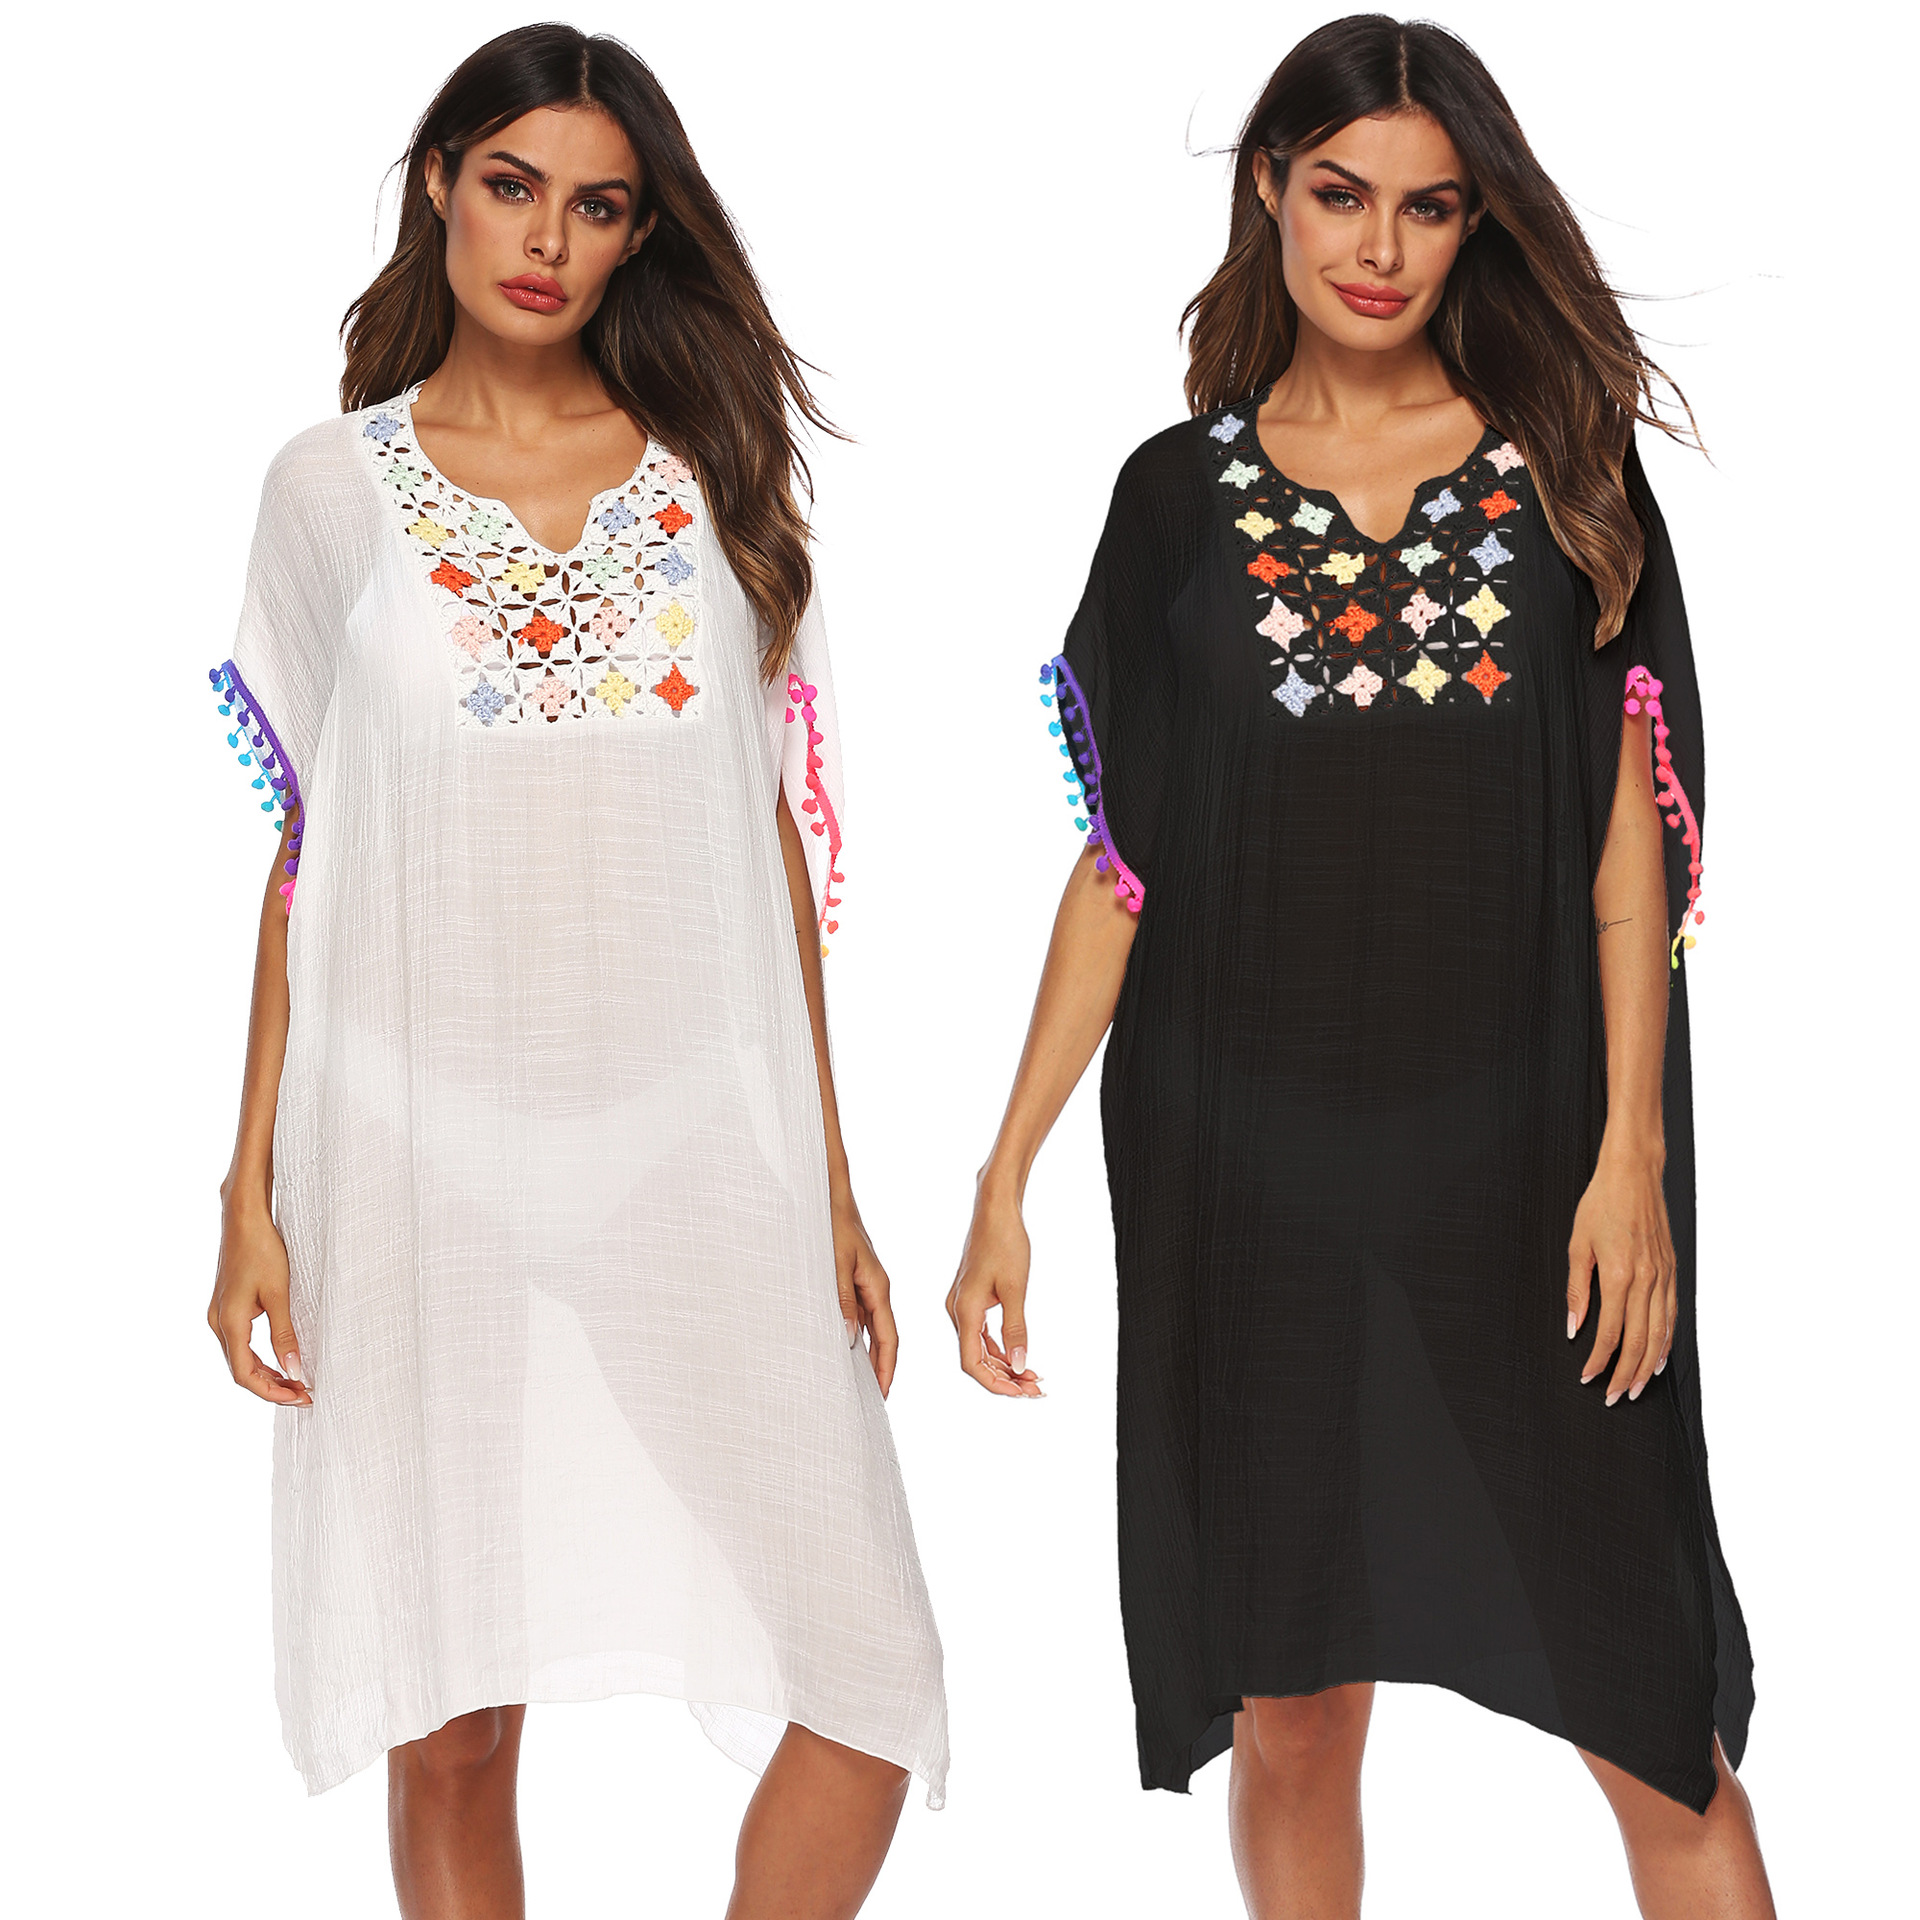 women loose dress summer holiday beach spring casual leisure tassel